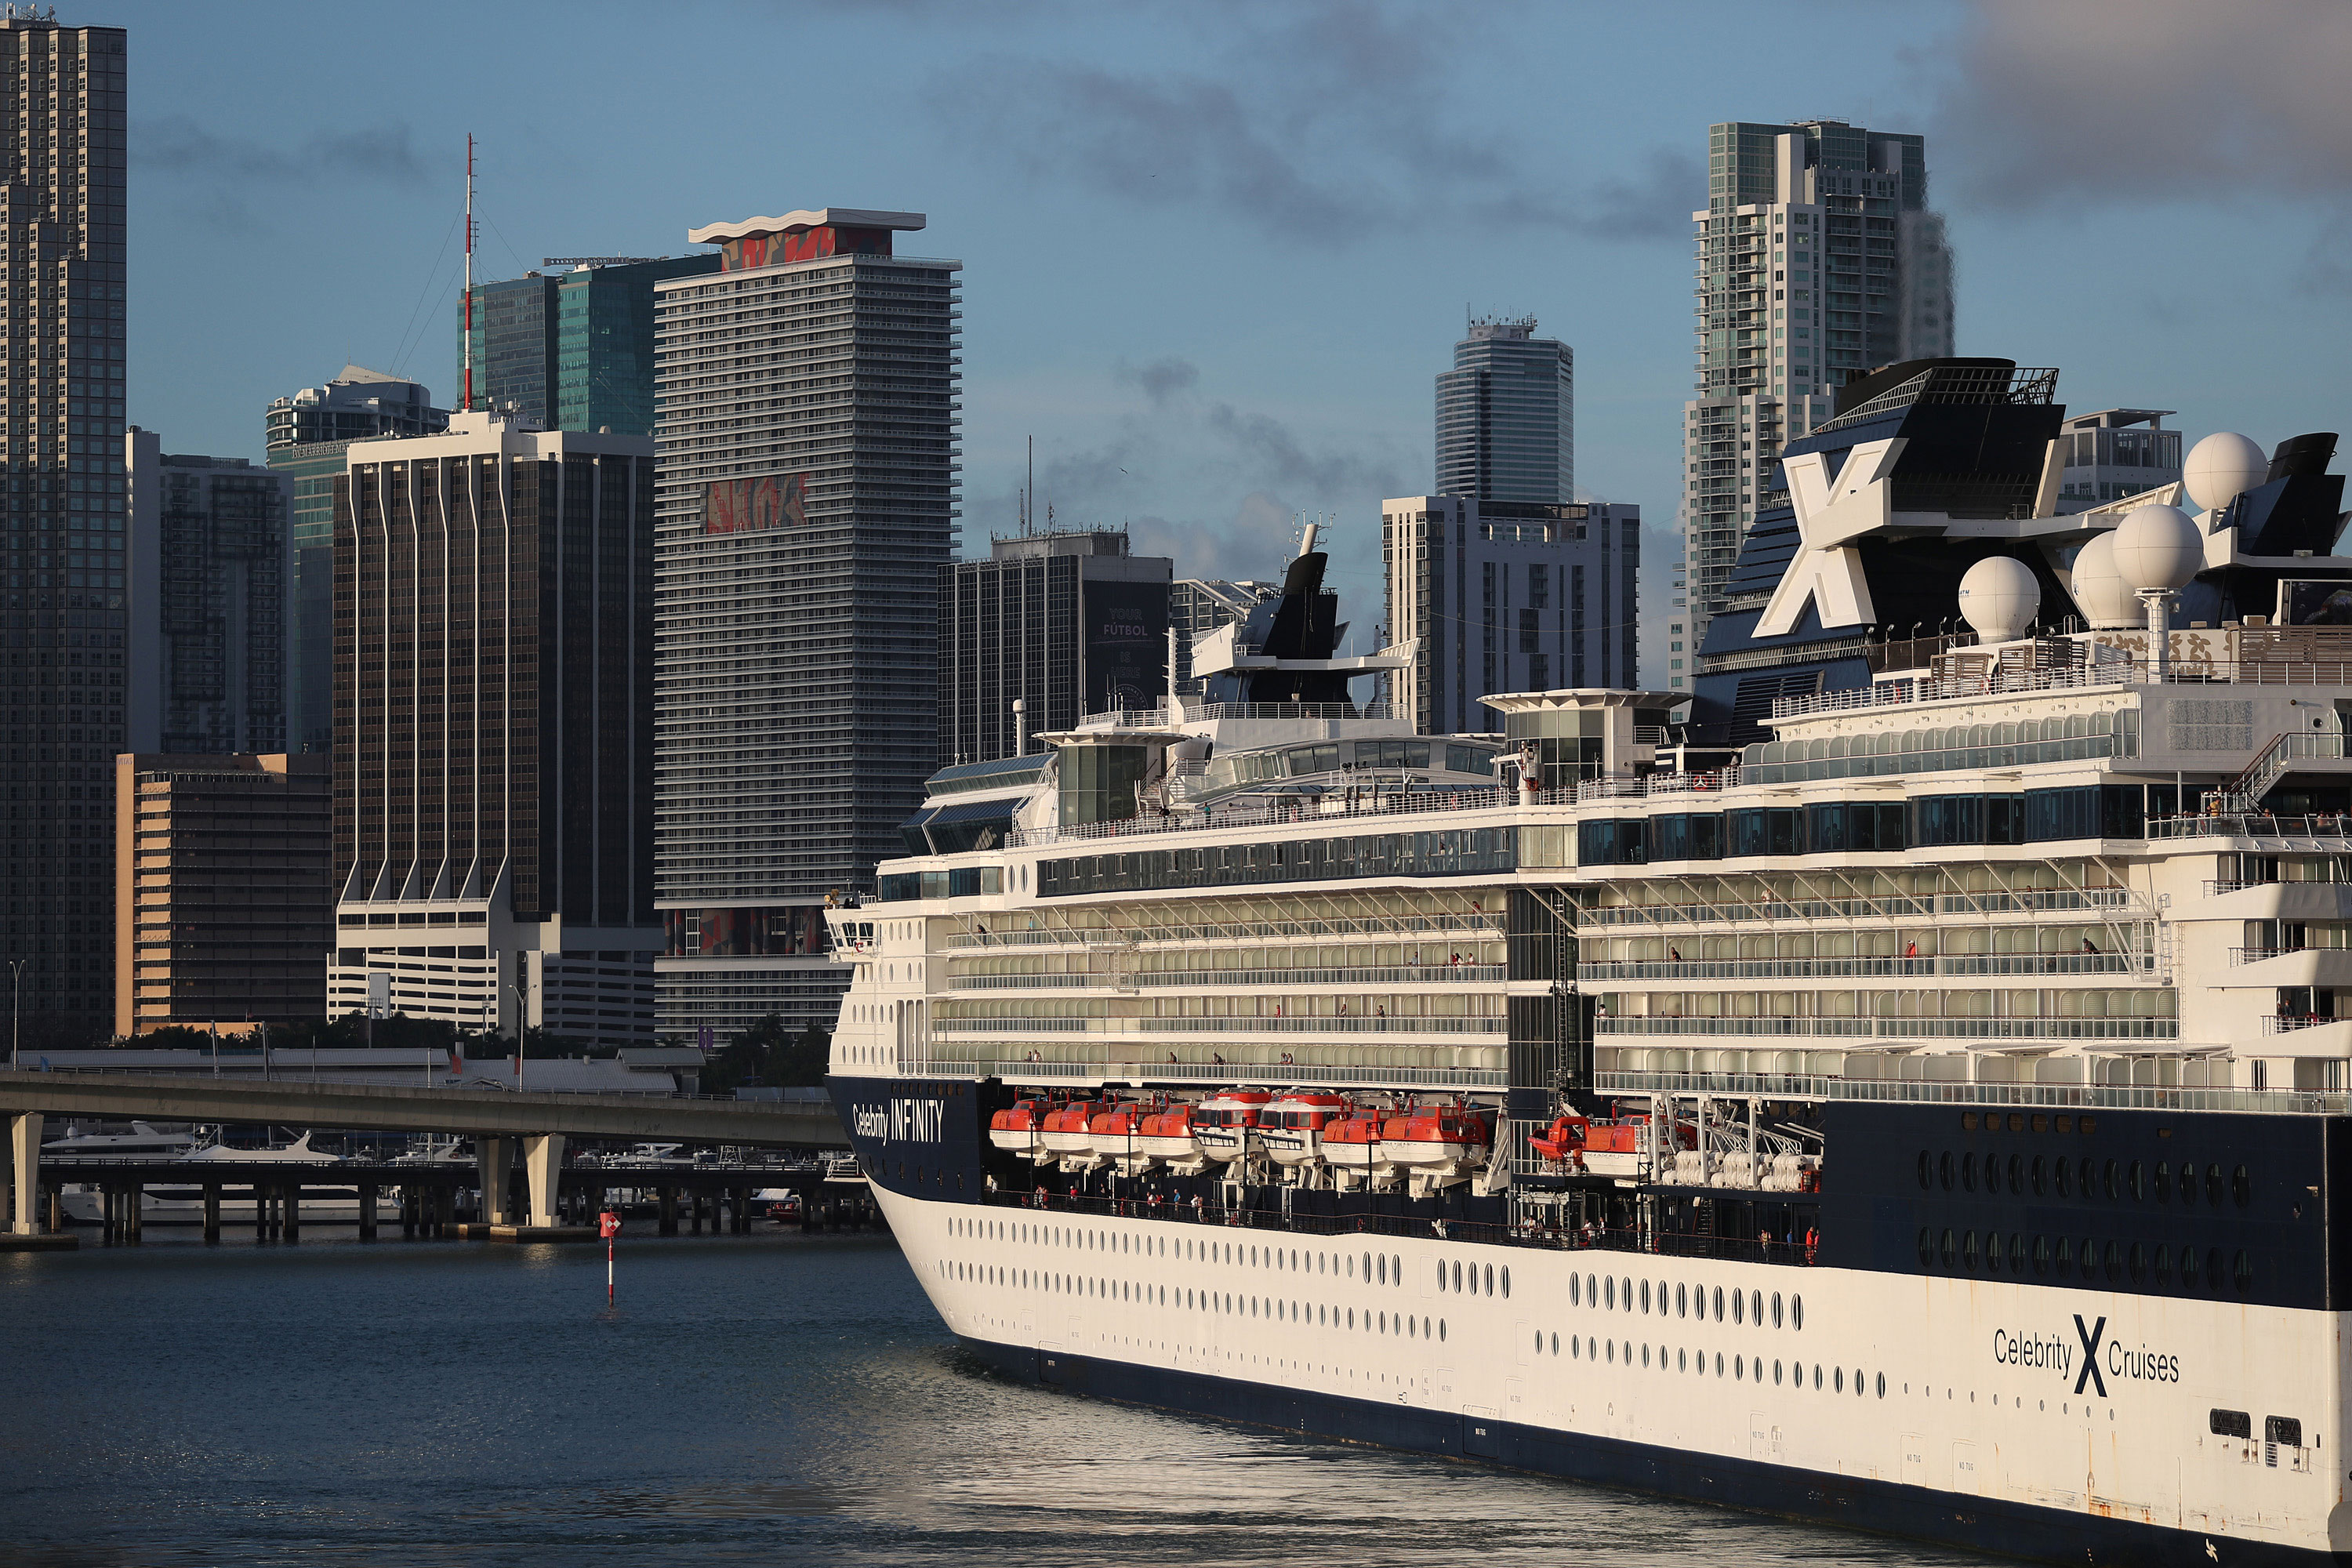 The Celebrity Infinity Cruise ship, wholly owned subsidiary of Royal Caribbean Cruises Ltd, returns toPortMiami from a cruise in the Caribbean on March 14 in Miami.